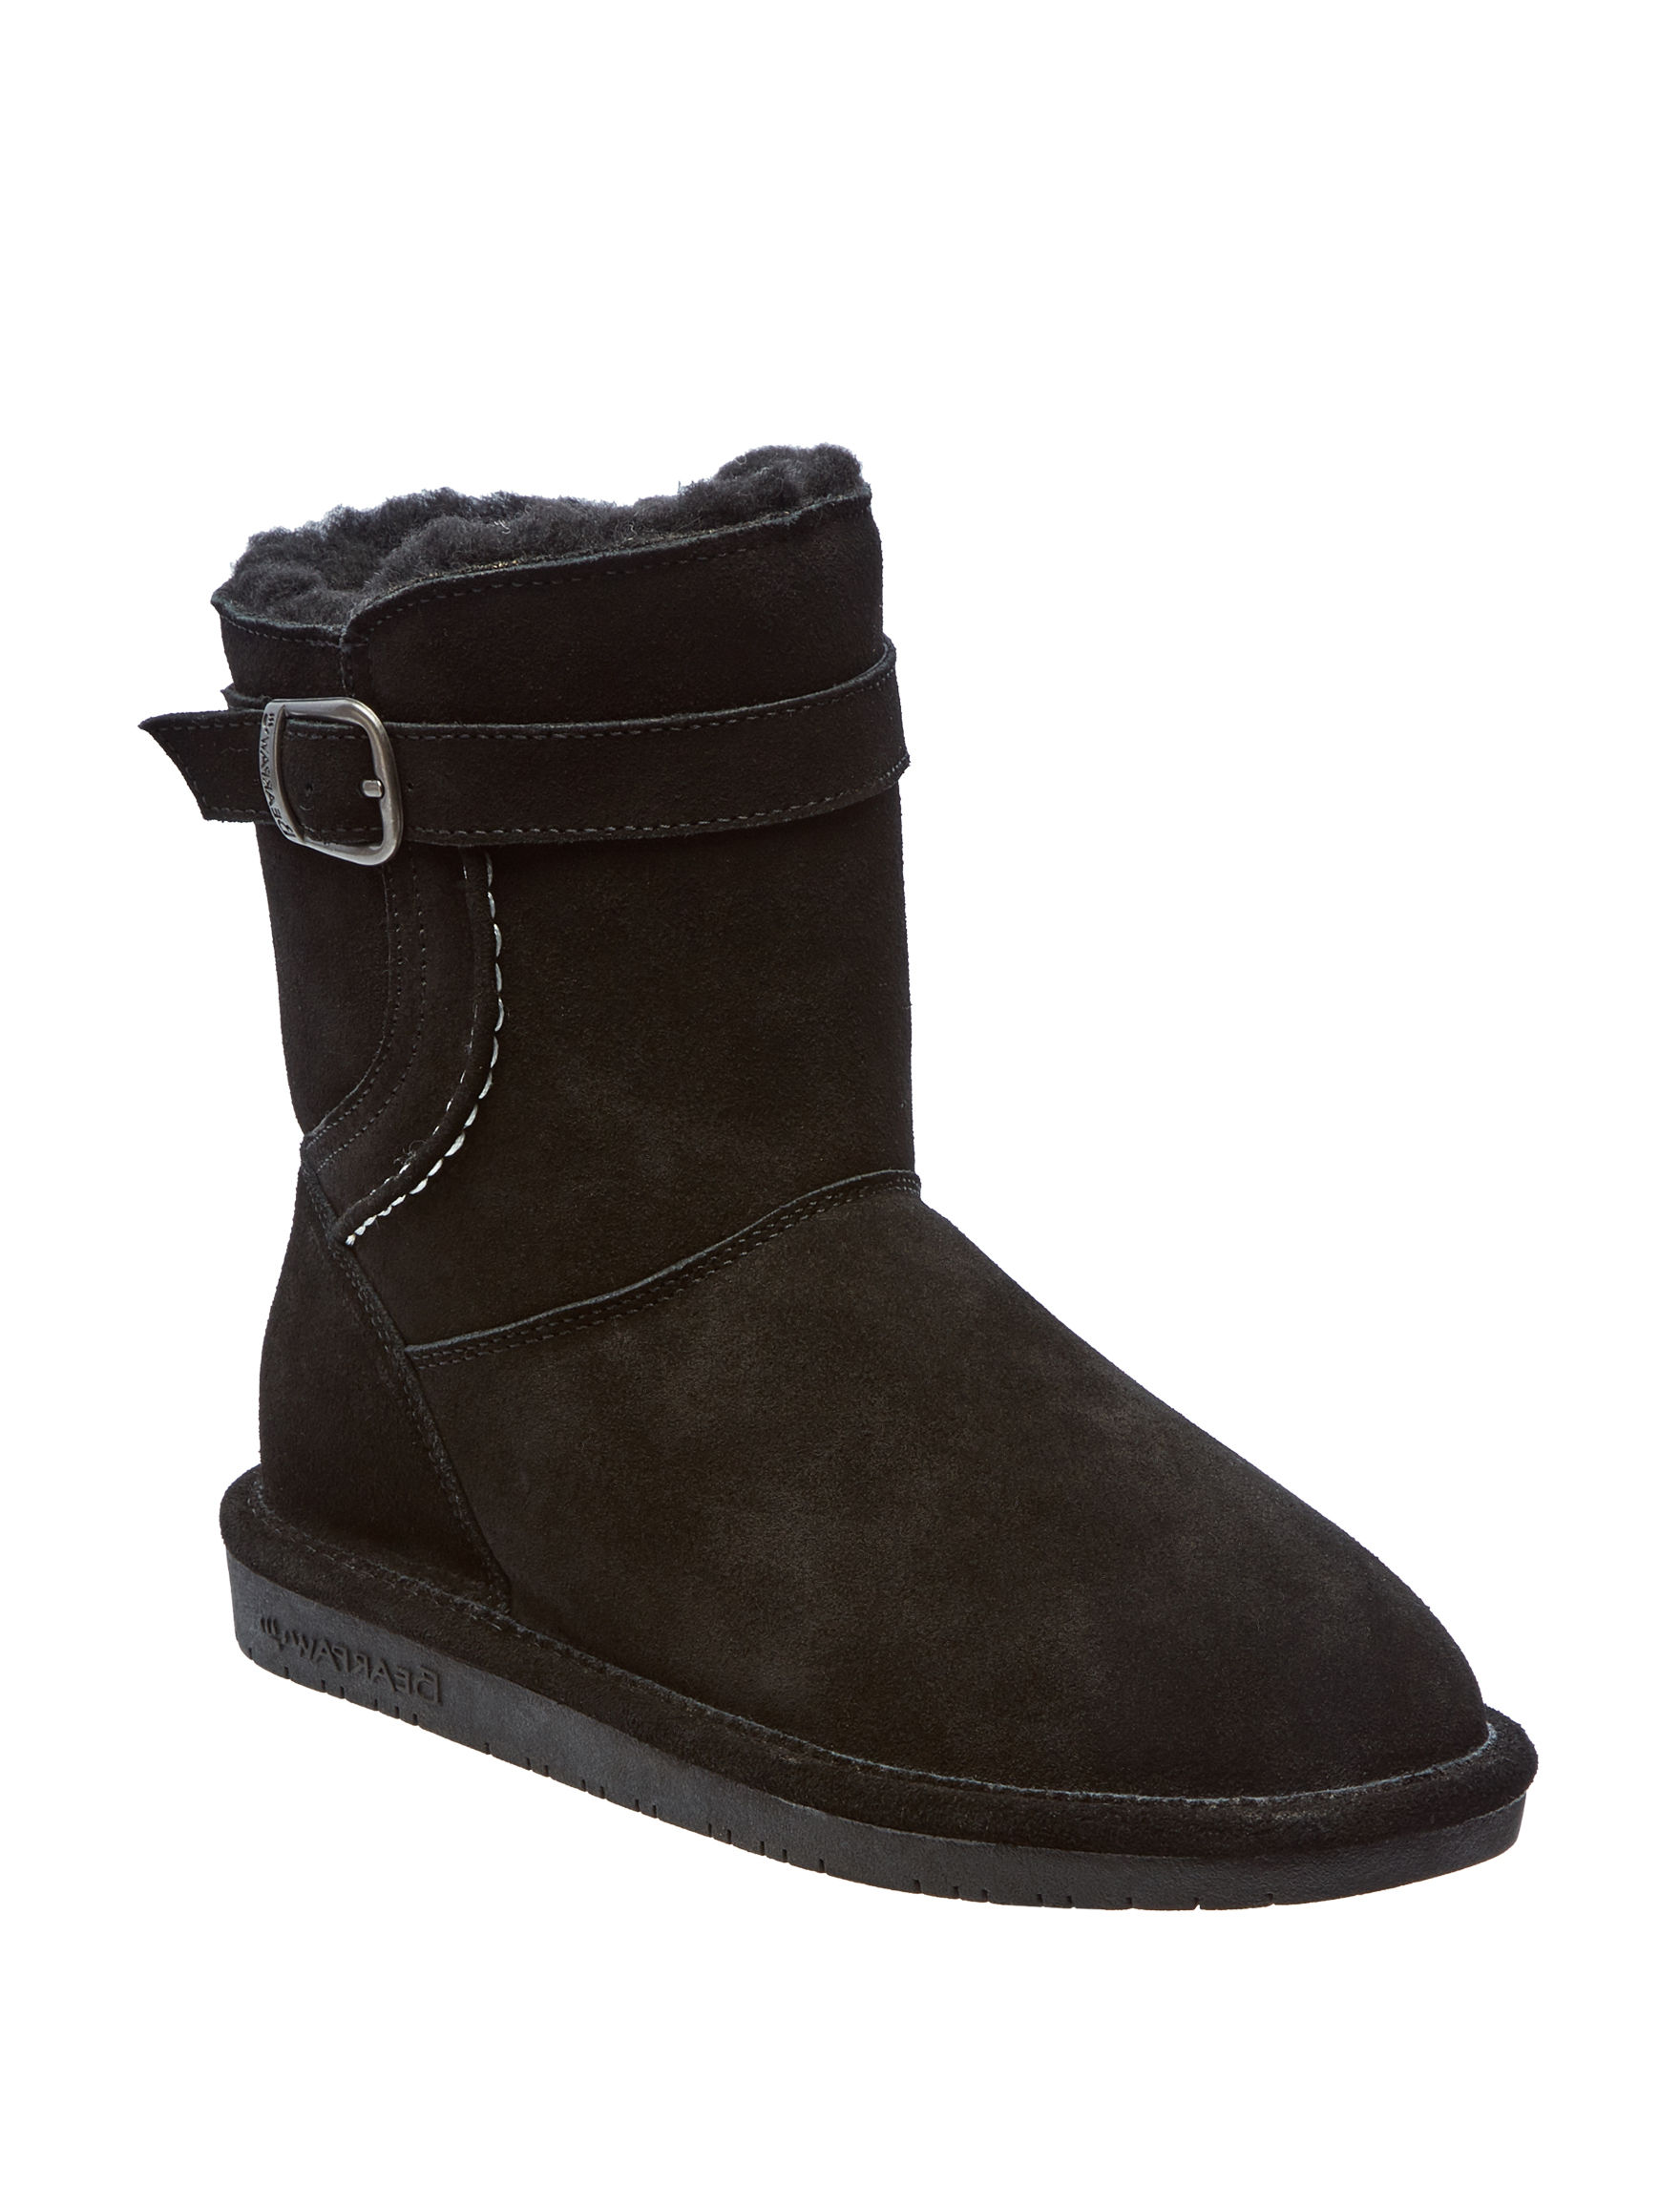 Bearpaw Black Winter Boots